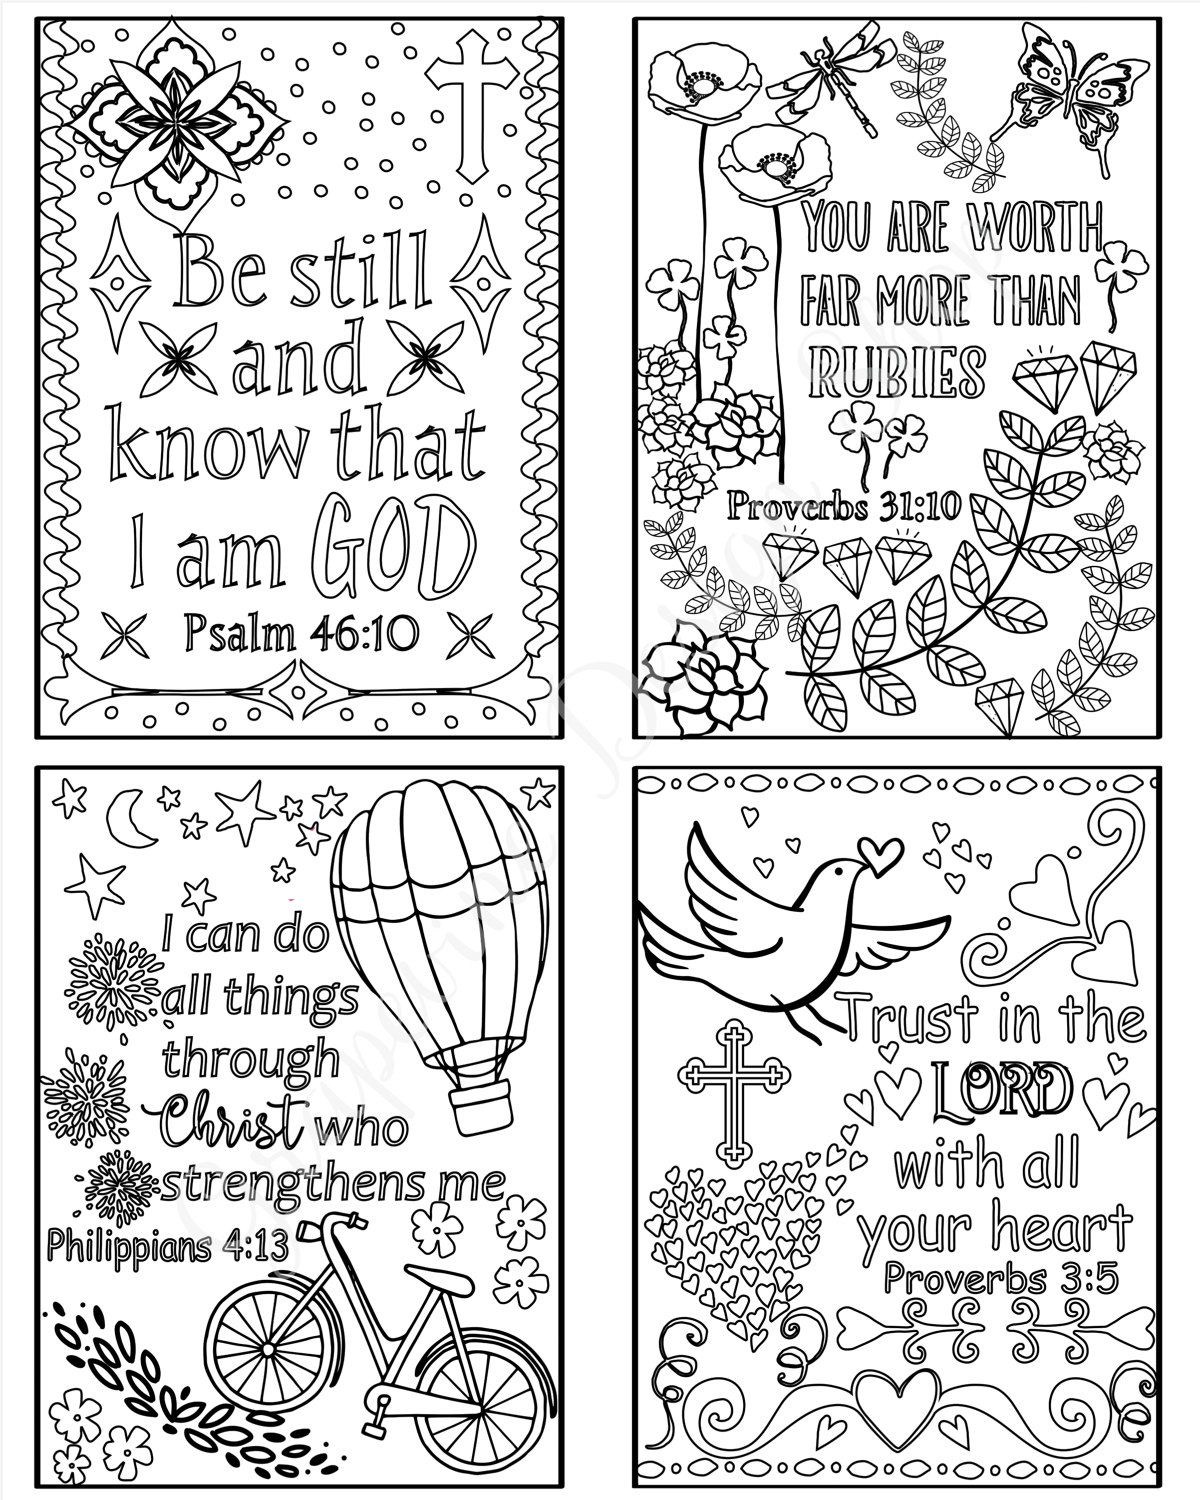 Coloring Scripture Cards - Bible Verse Cards - Set Of 8 Instant